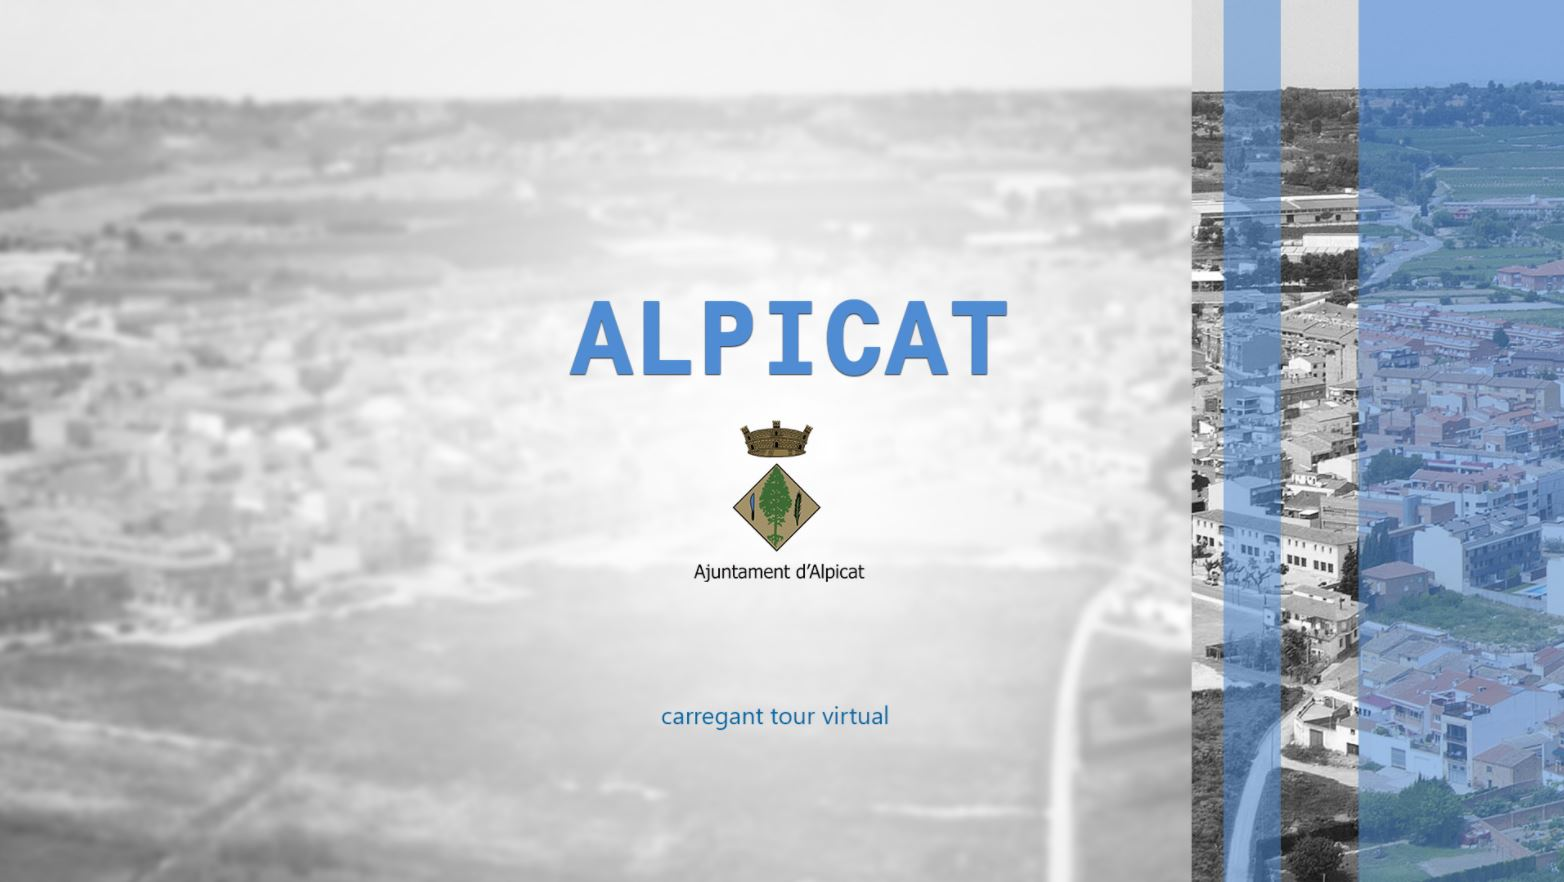 Tour Alpicat